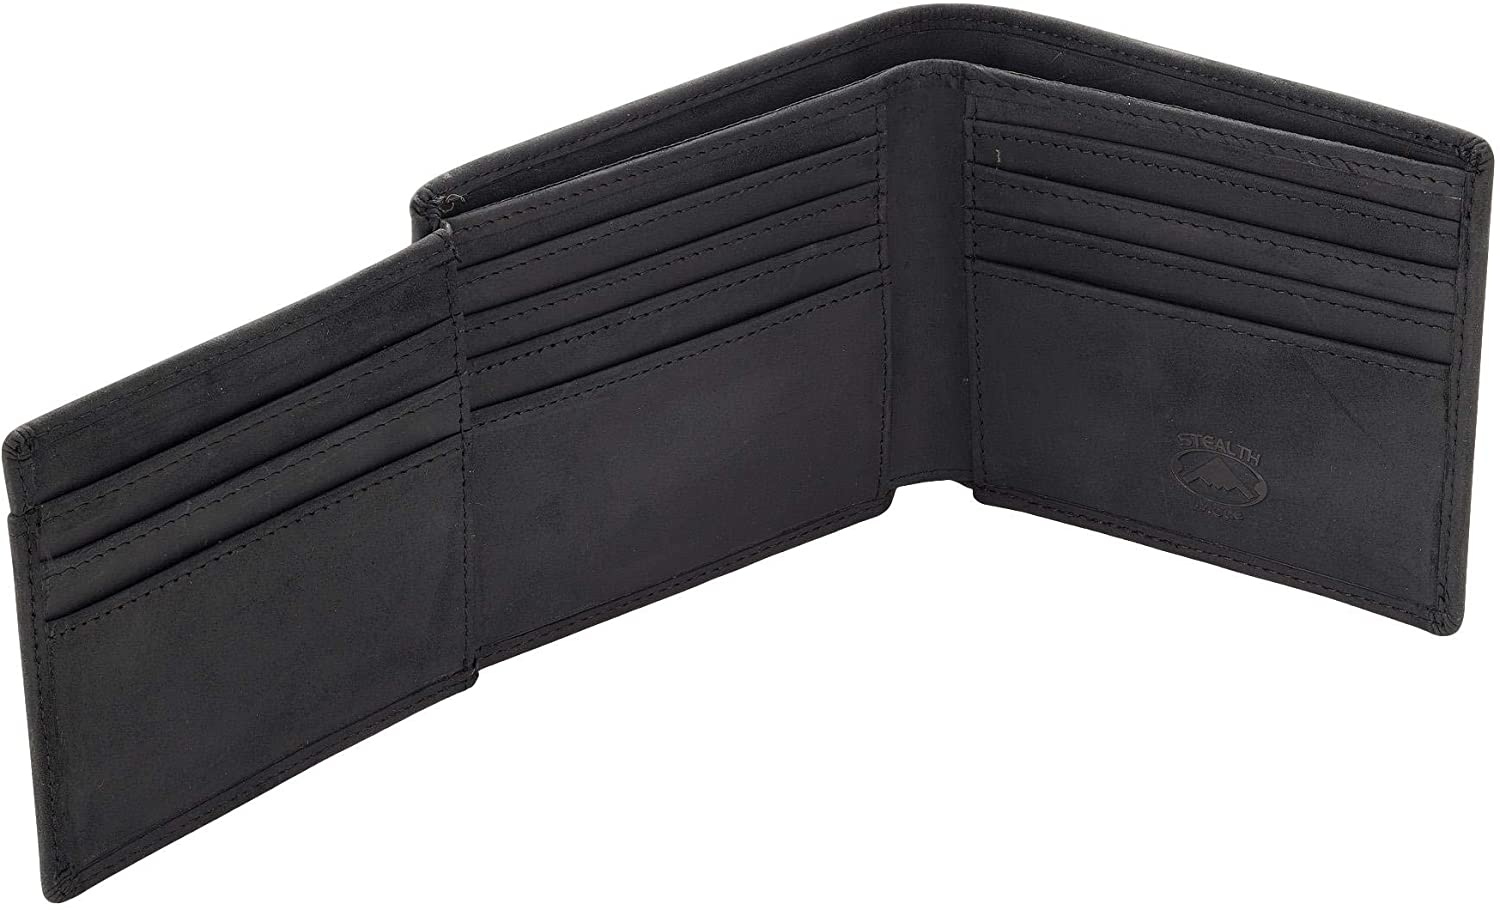 Stealth Mode Mens Trifold Leather Wallet - Mens RFID Leather Wallet with ID Window (Black)